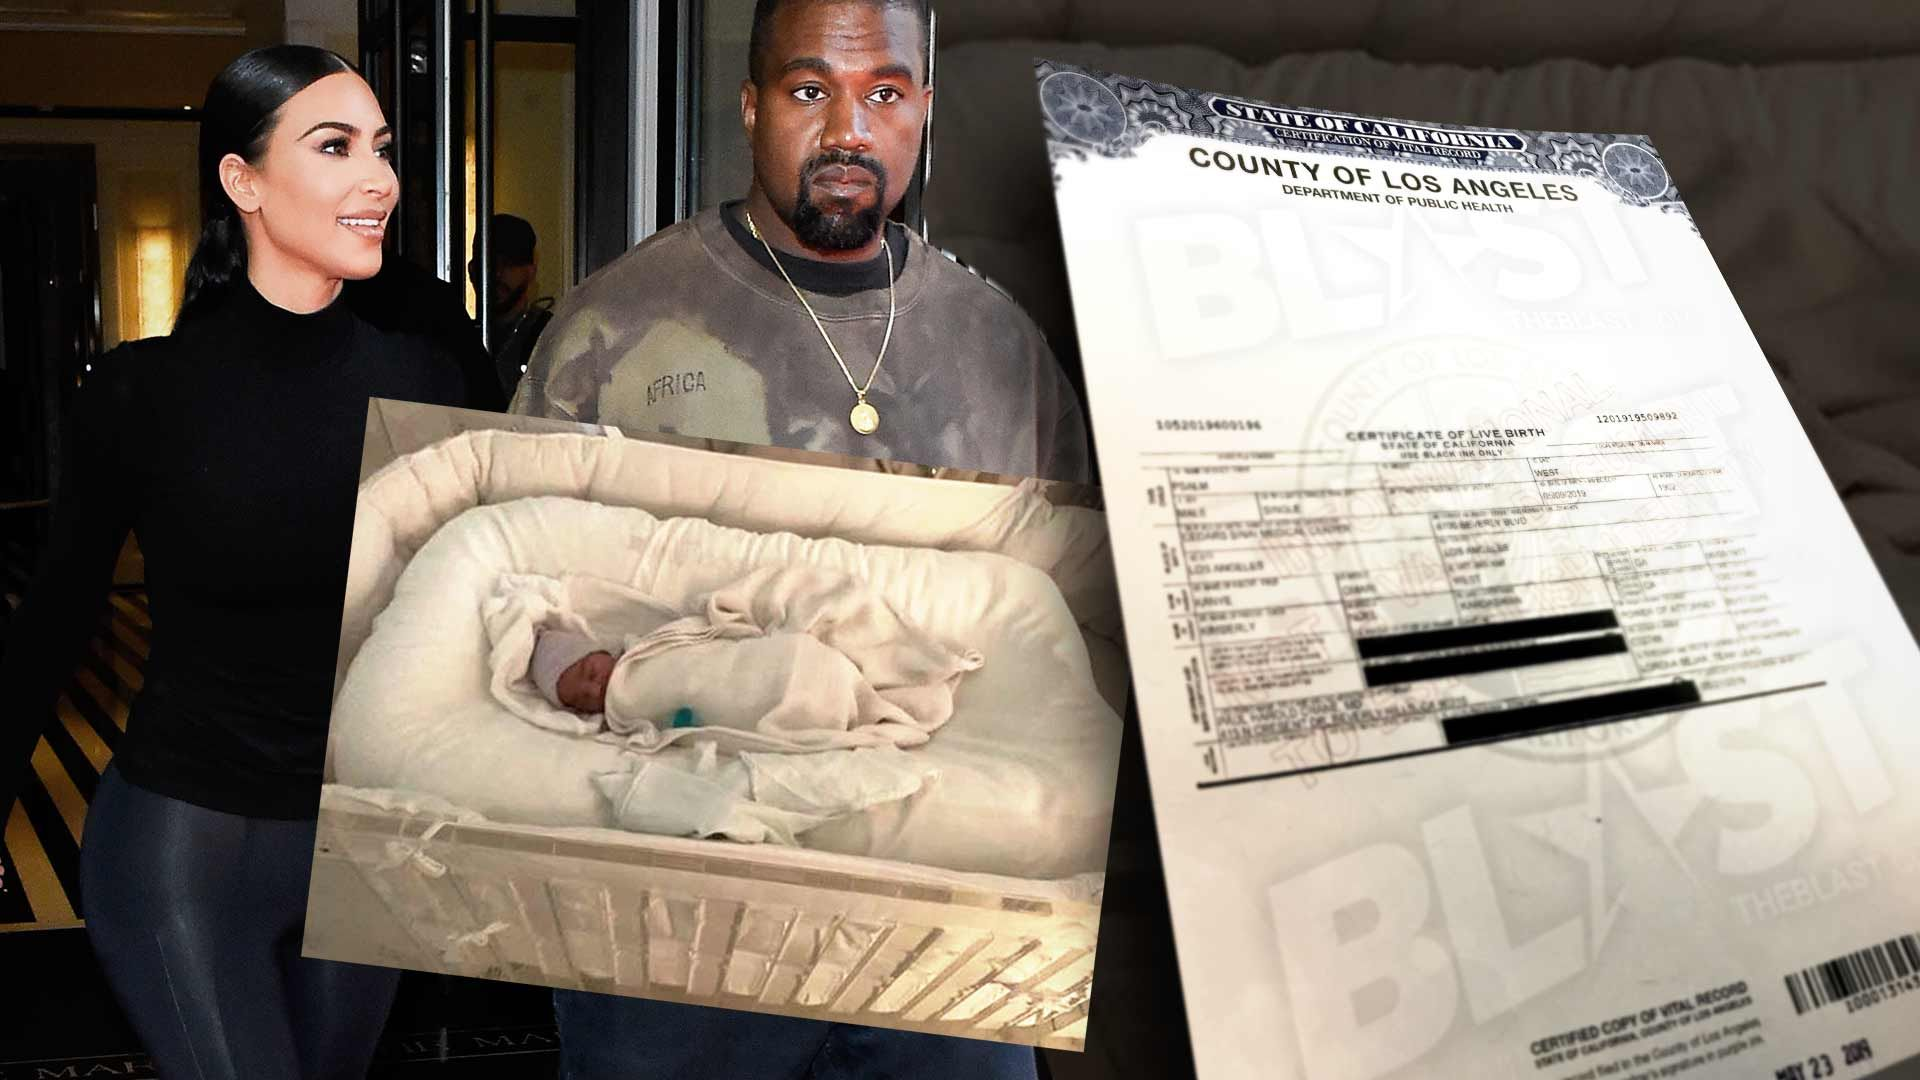 Psalm West's Birth Certificate Reveals He Was Delivered by